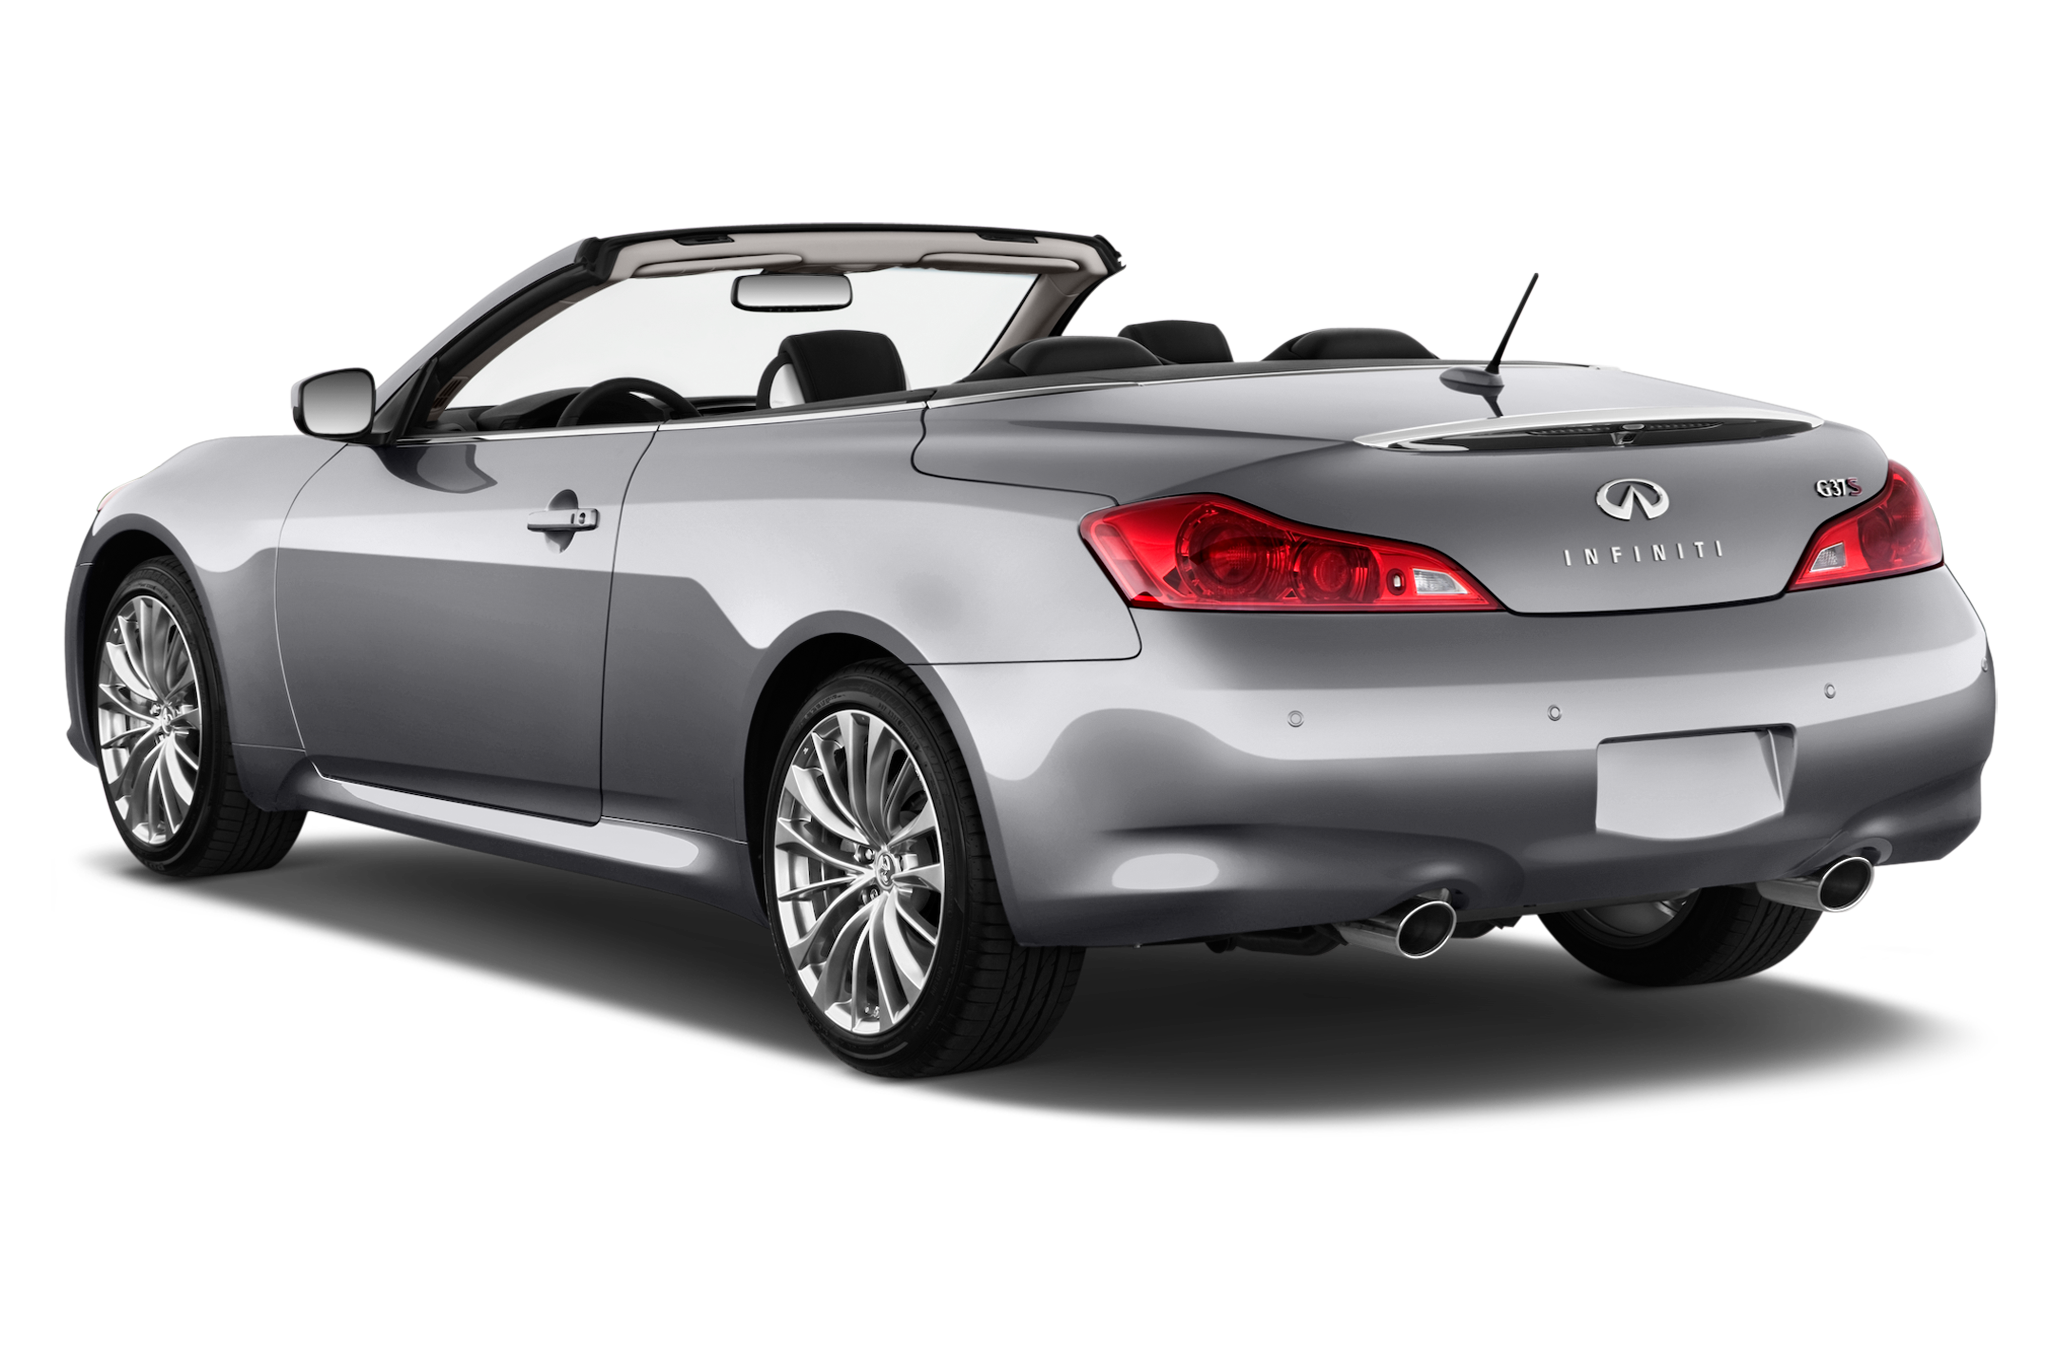 convertible built infiniti t be infinity the won that this concept is news